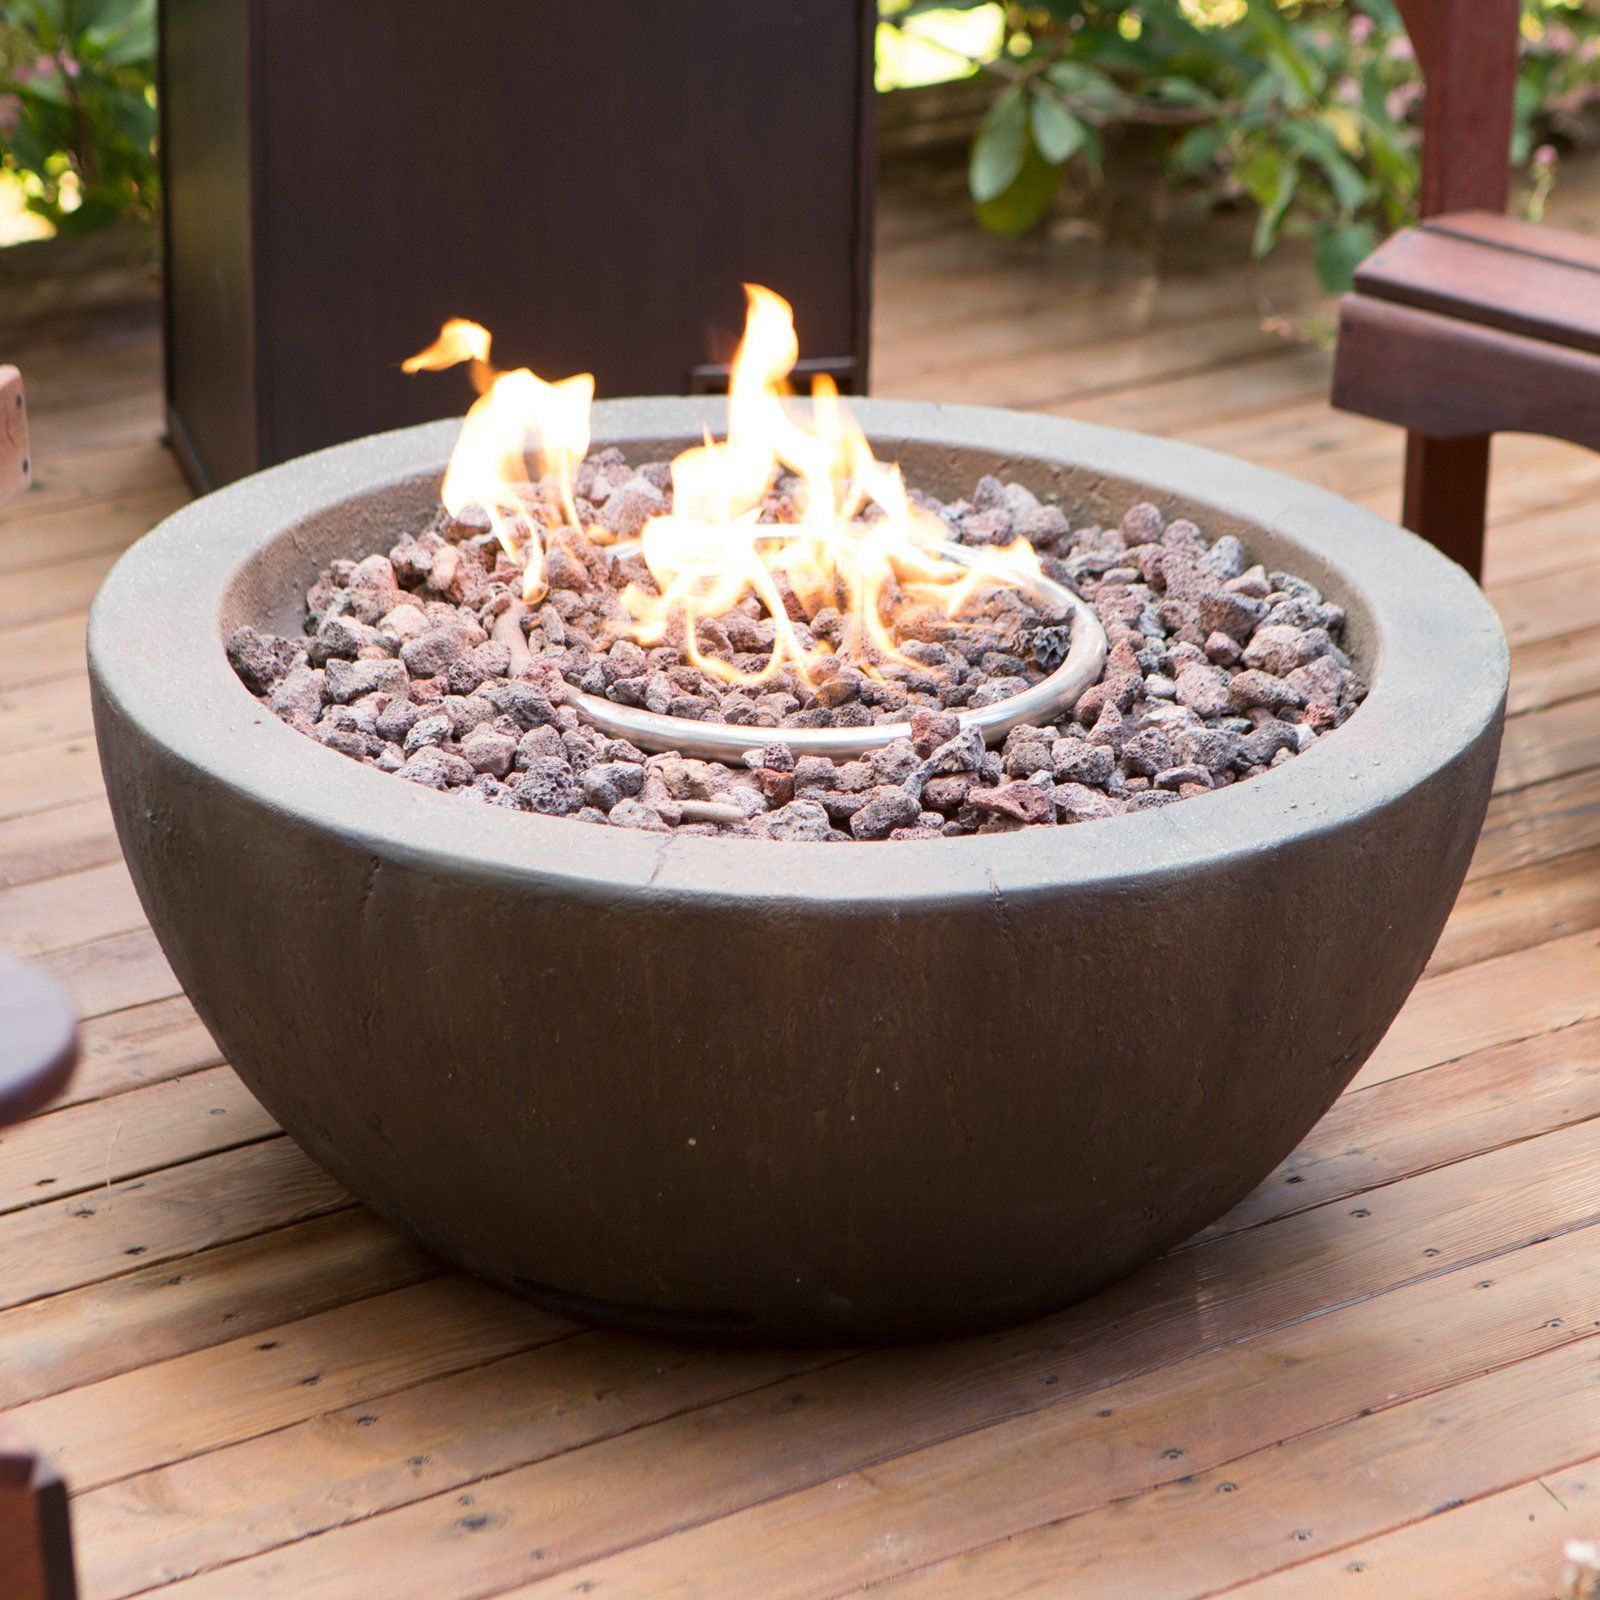 Coral Coast Mesa 28 Diam Fire Bowl With Free Cover In 2020 Propane Fire Pit Gas Firepit Fire Pit Bowl